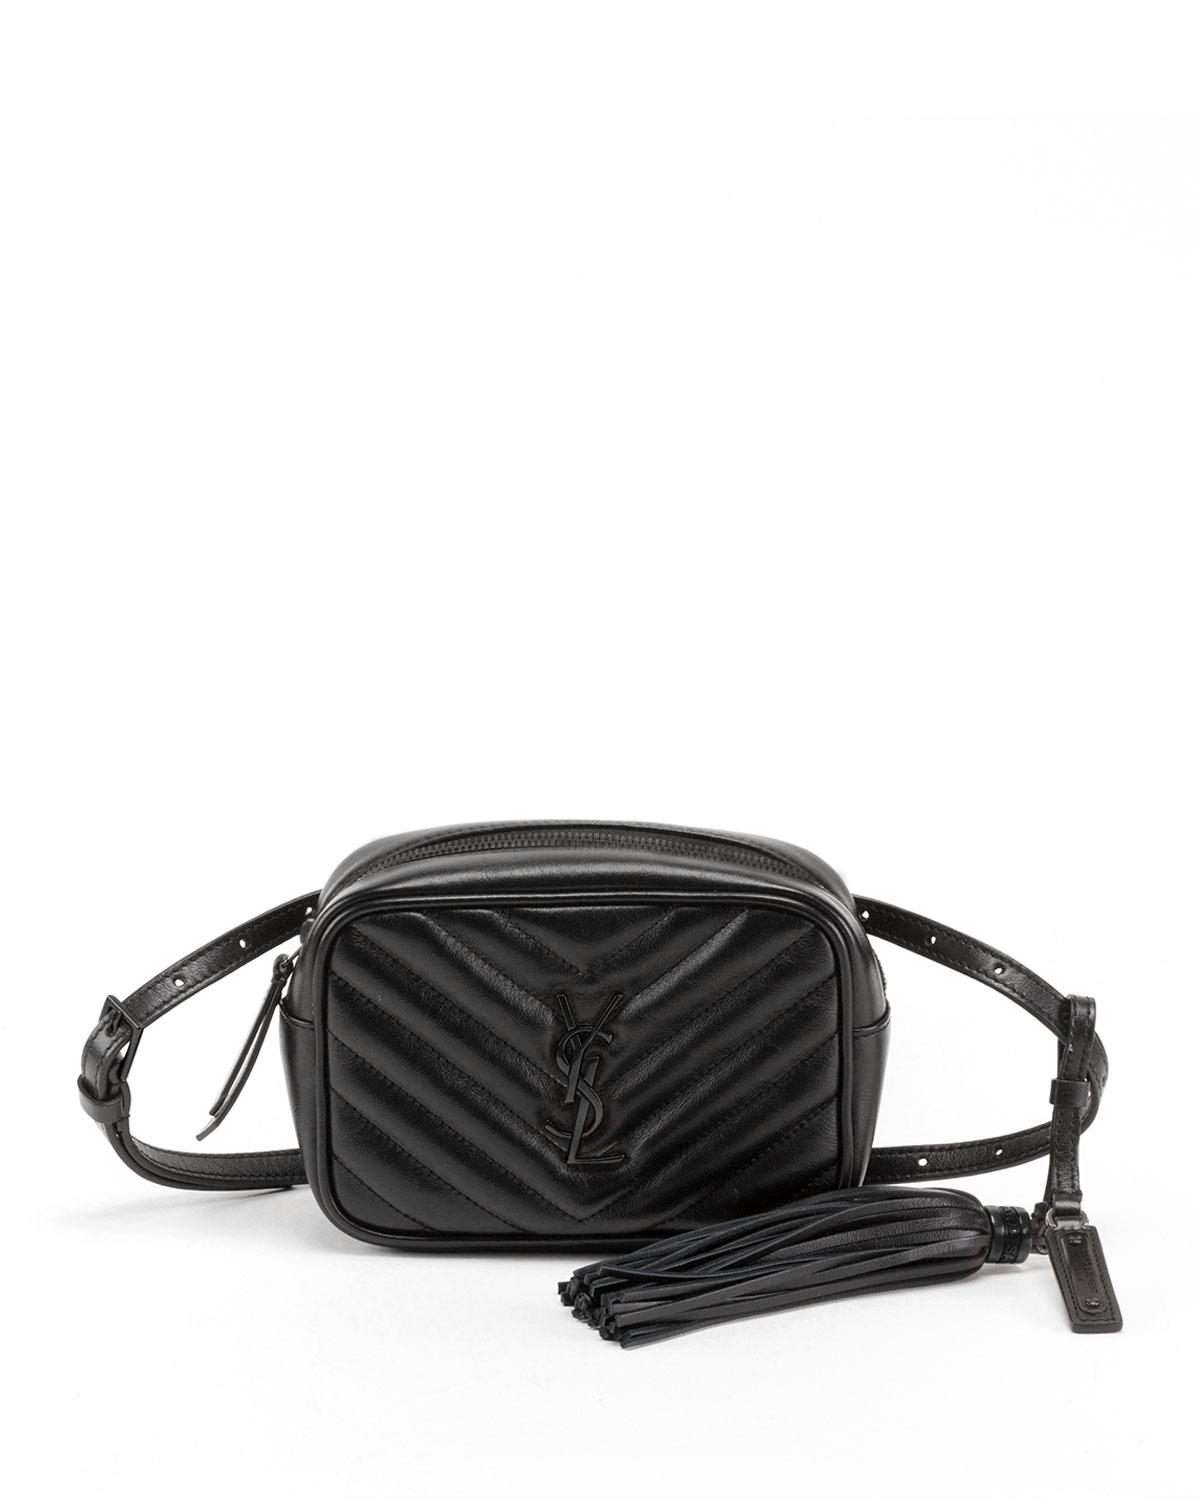 d91ae96239f1 Saint Laurent. Women s Lou Monogram Ysl Quilted Leather Belt Bag ...